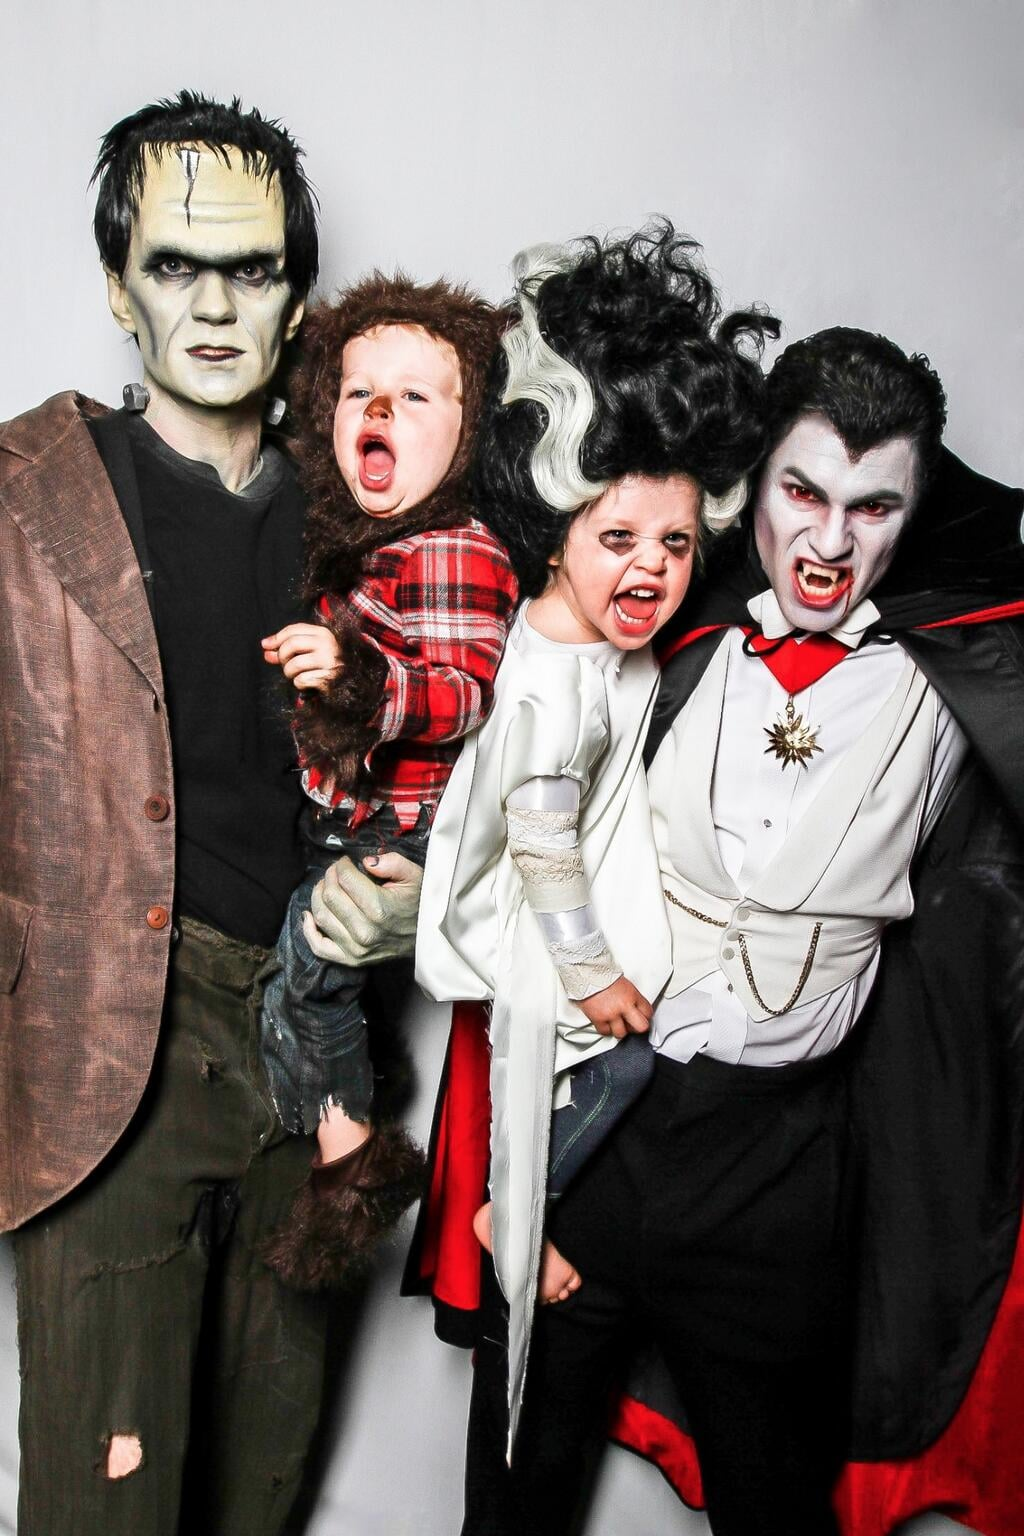 Neil Patrick Harris and his husband David Burtka dressed as Frankenstein and Dracula while their twins, Gideon and Harper, went as a werewolf and Wife of Frankenstein. Source: Twitter user ActuallyNPH